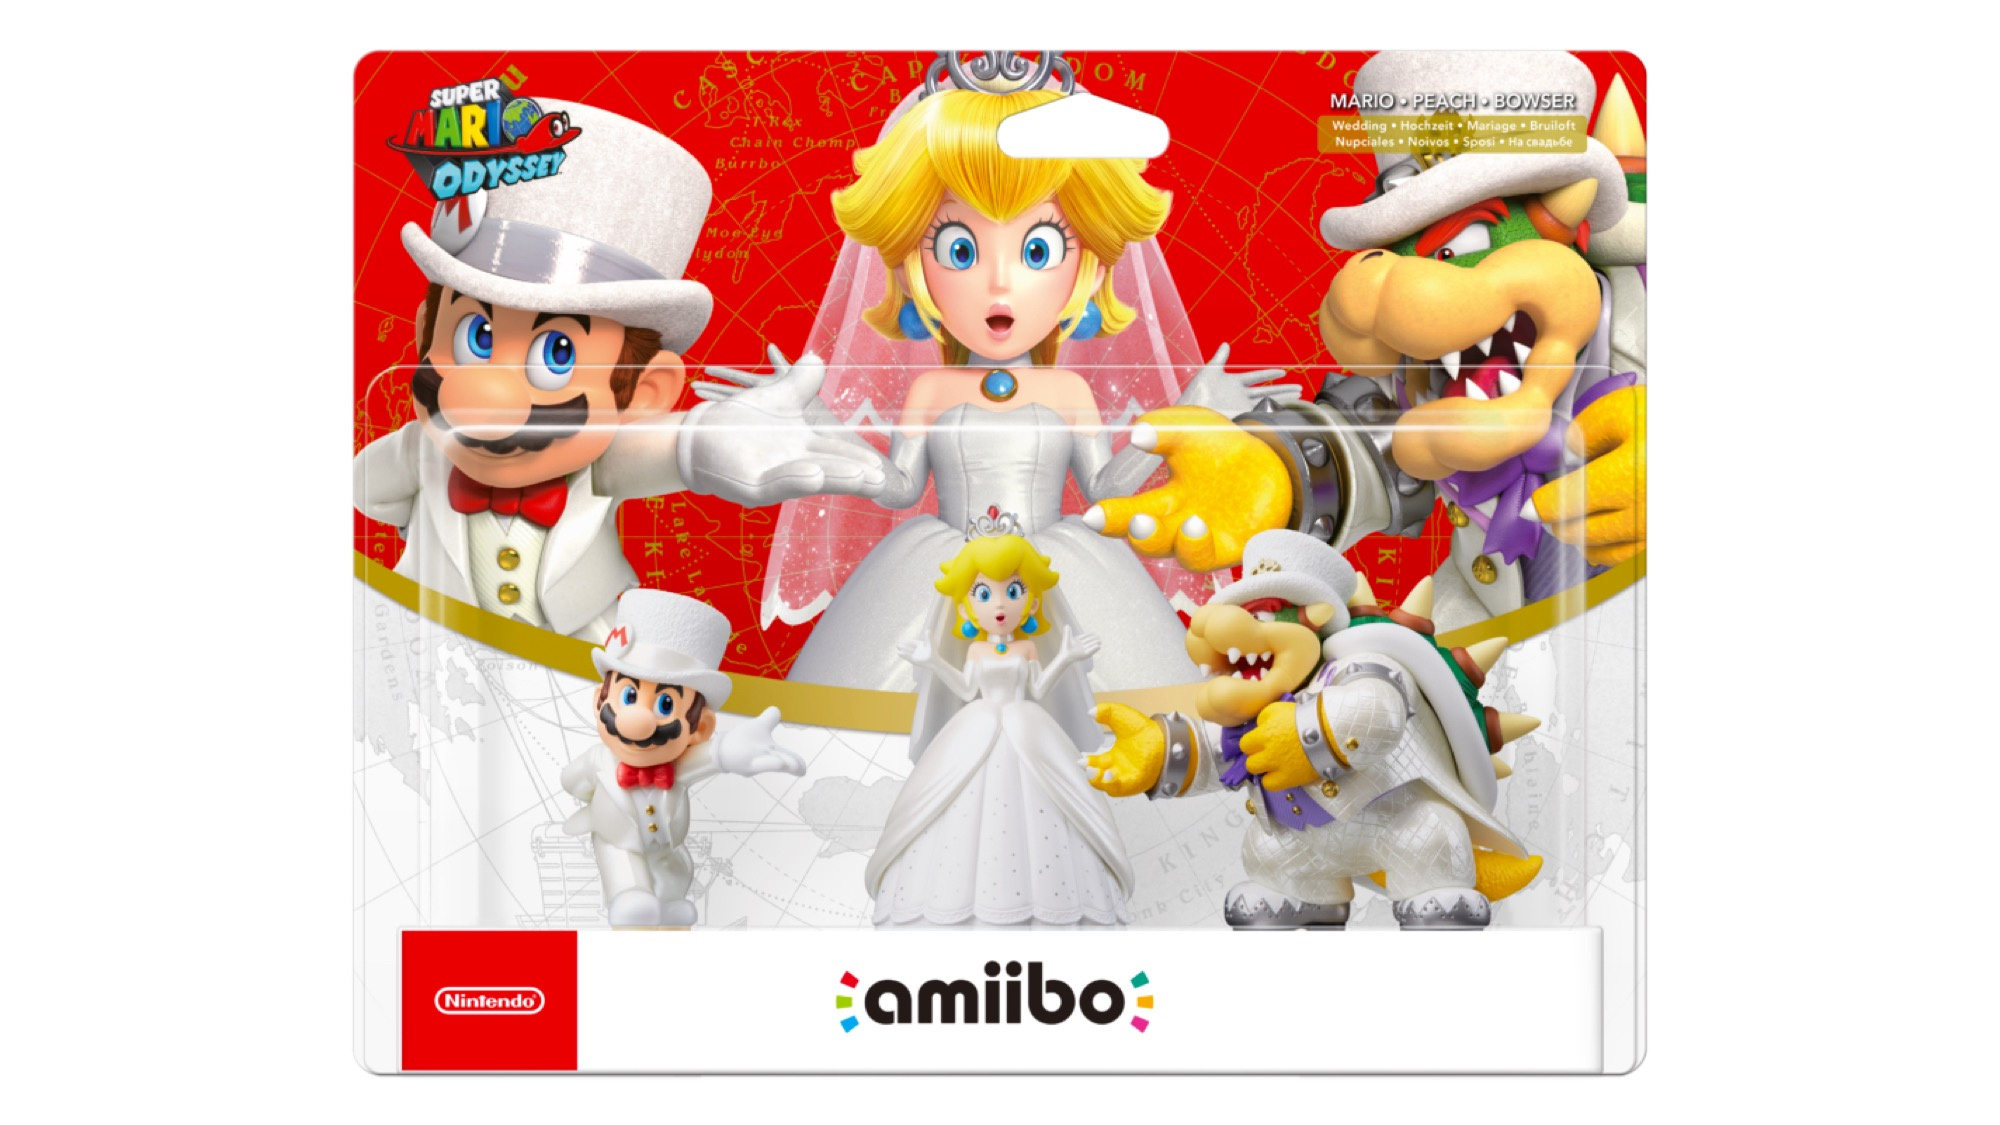 Super Mario Odyssey S Wedding Amiibo Are Being Restocked In North